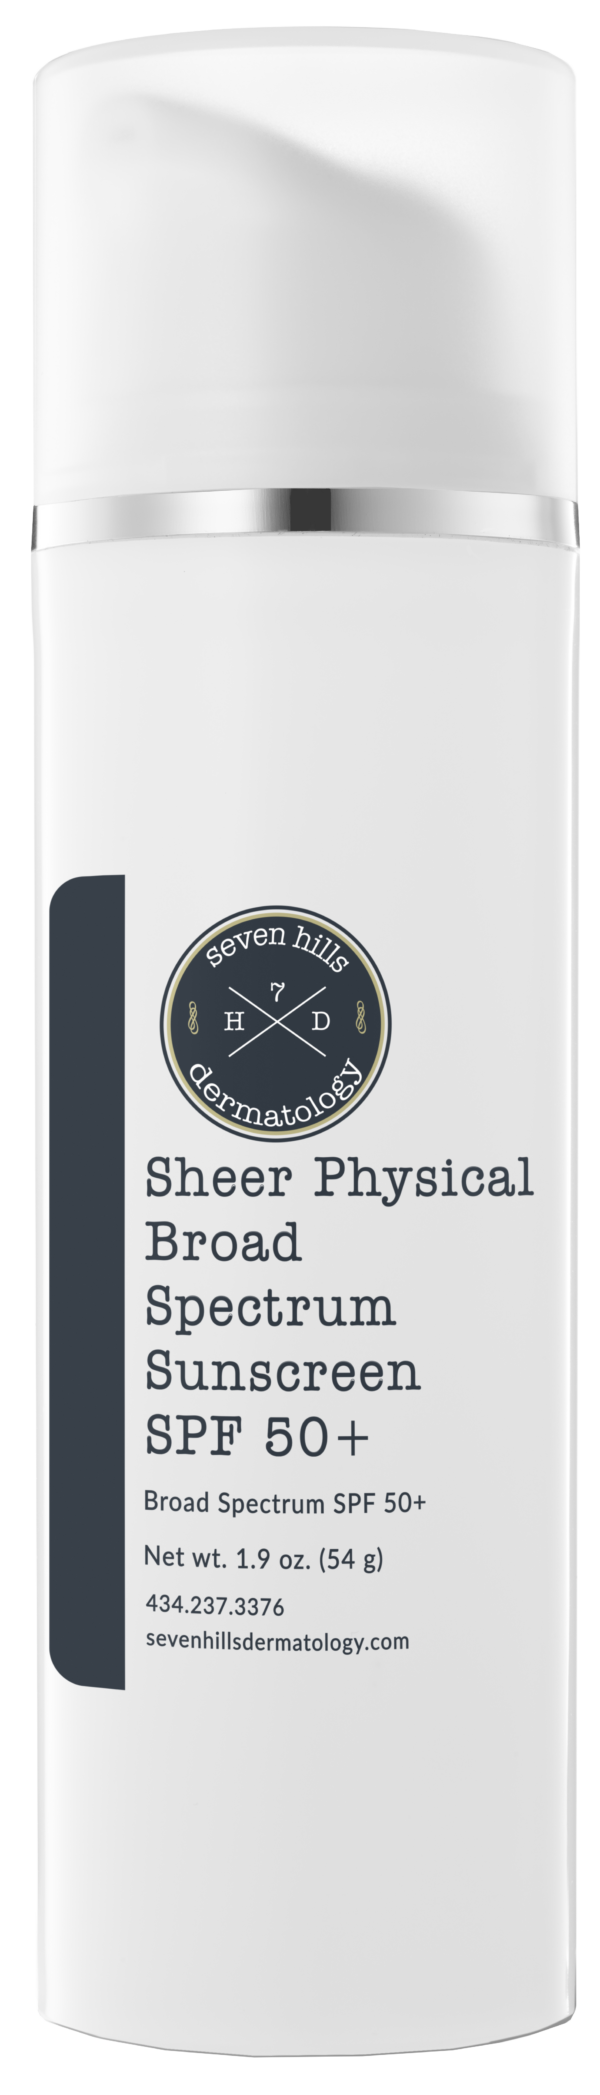 Container of lotion that reads: Sheer Physical Borad Spectrum Sunscreen SPF 50+